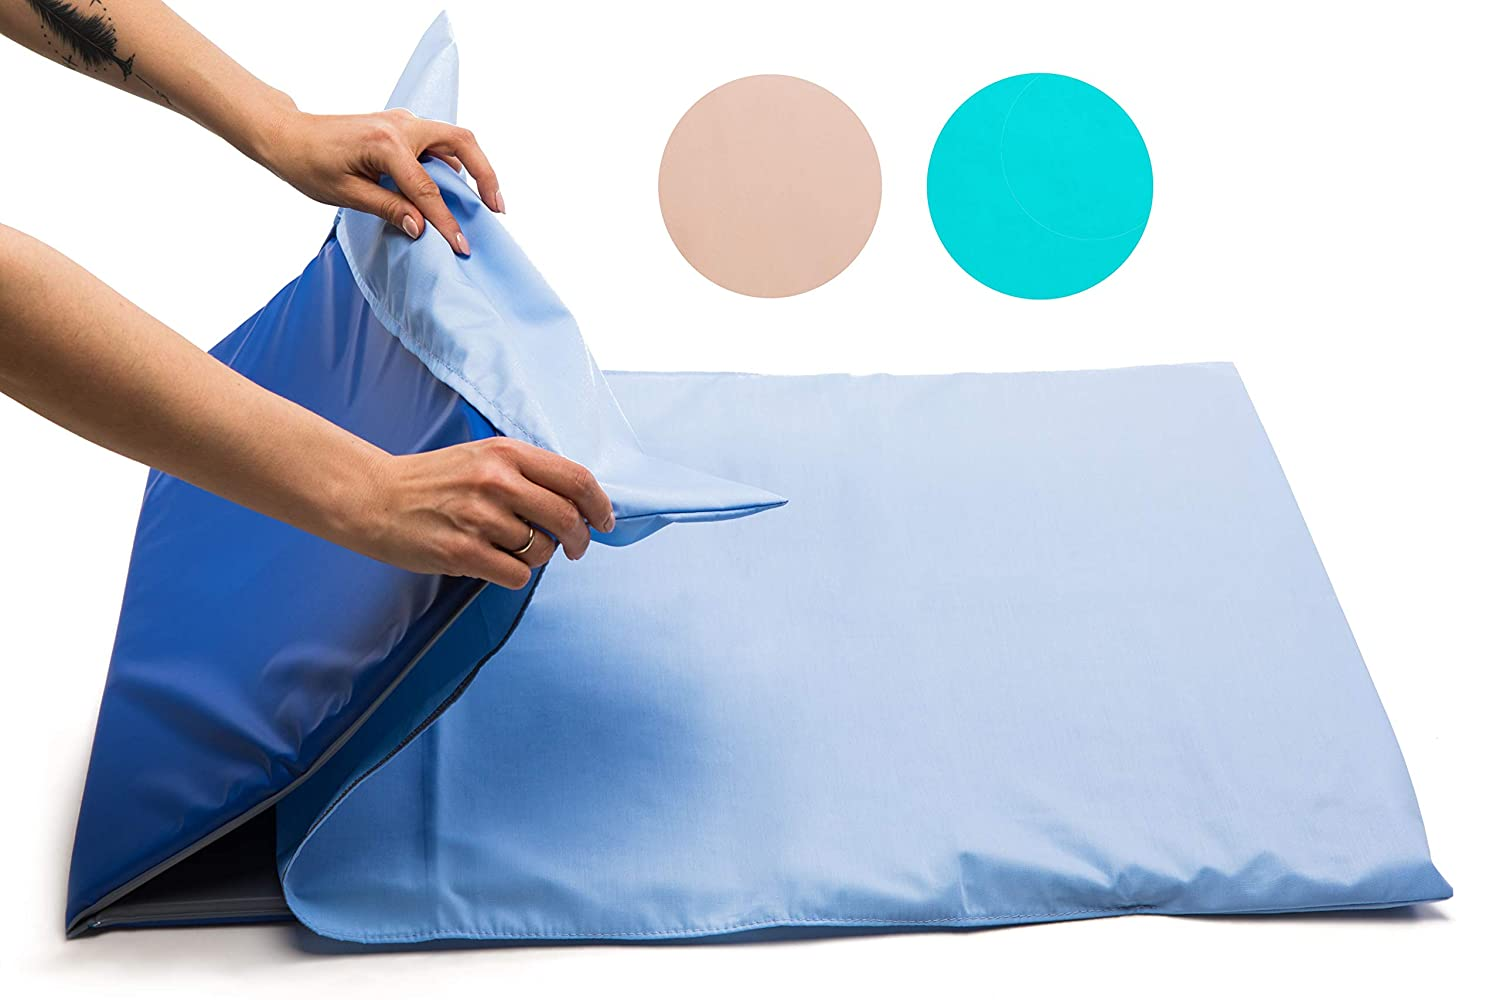 Fitted Sheet, Aqua Nursery Sleep MAT /♥ Waterproof /• Triple Folding Rest Mats /• Toddler Sleeping Mattress /• Baby Nap Time /• No 1 Choice for Childminder and Daycare